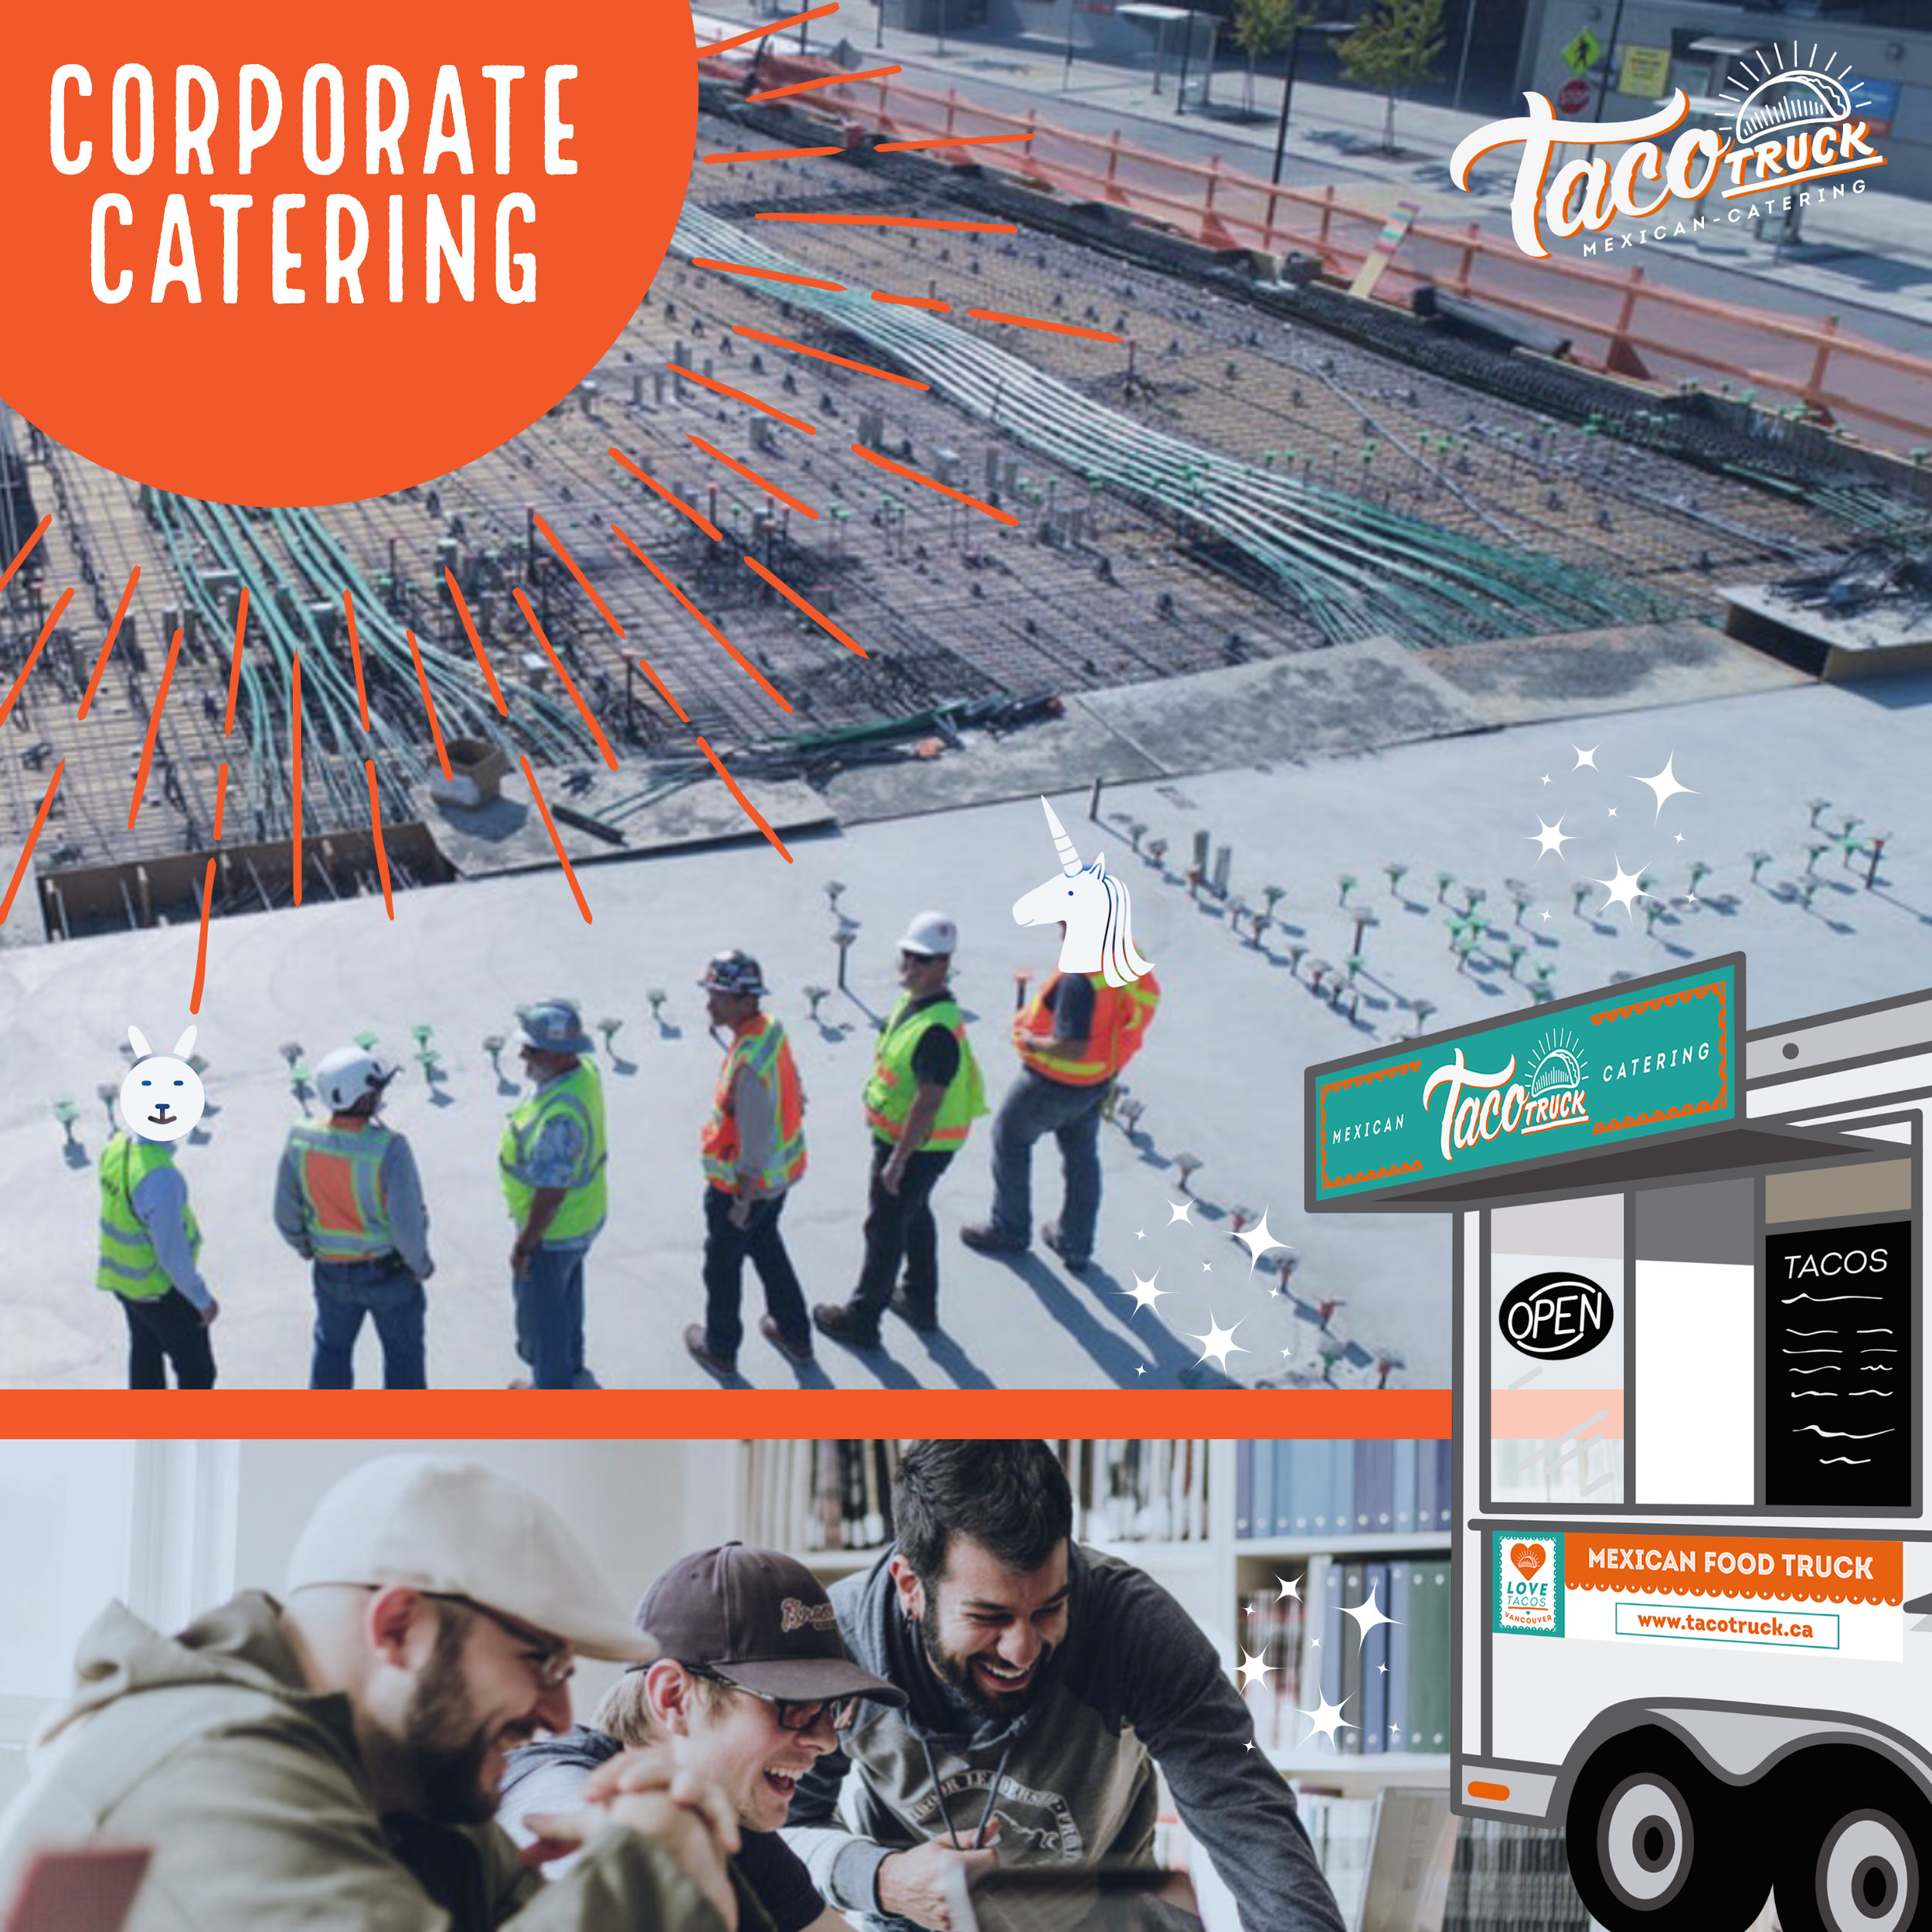 Corporate catering vancouver